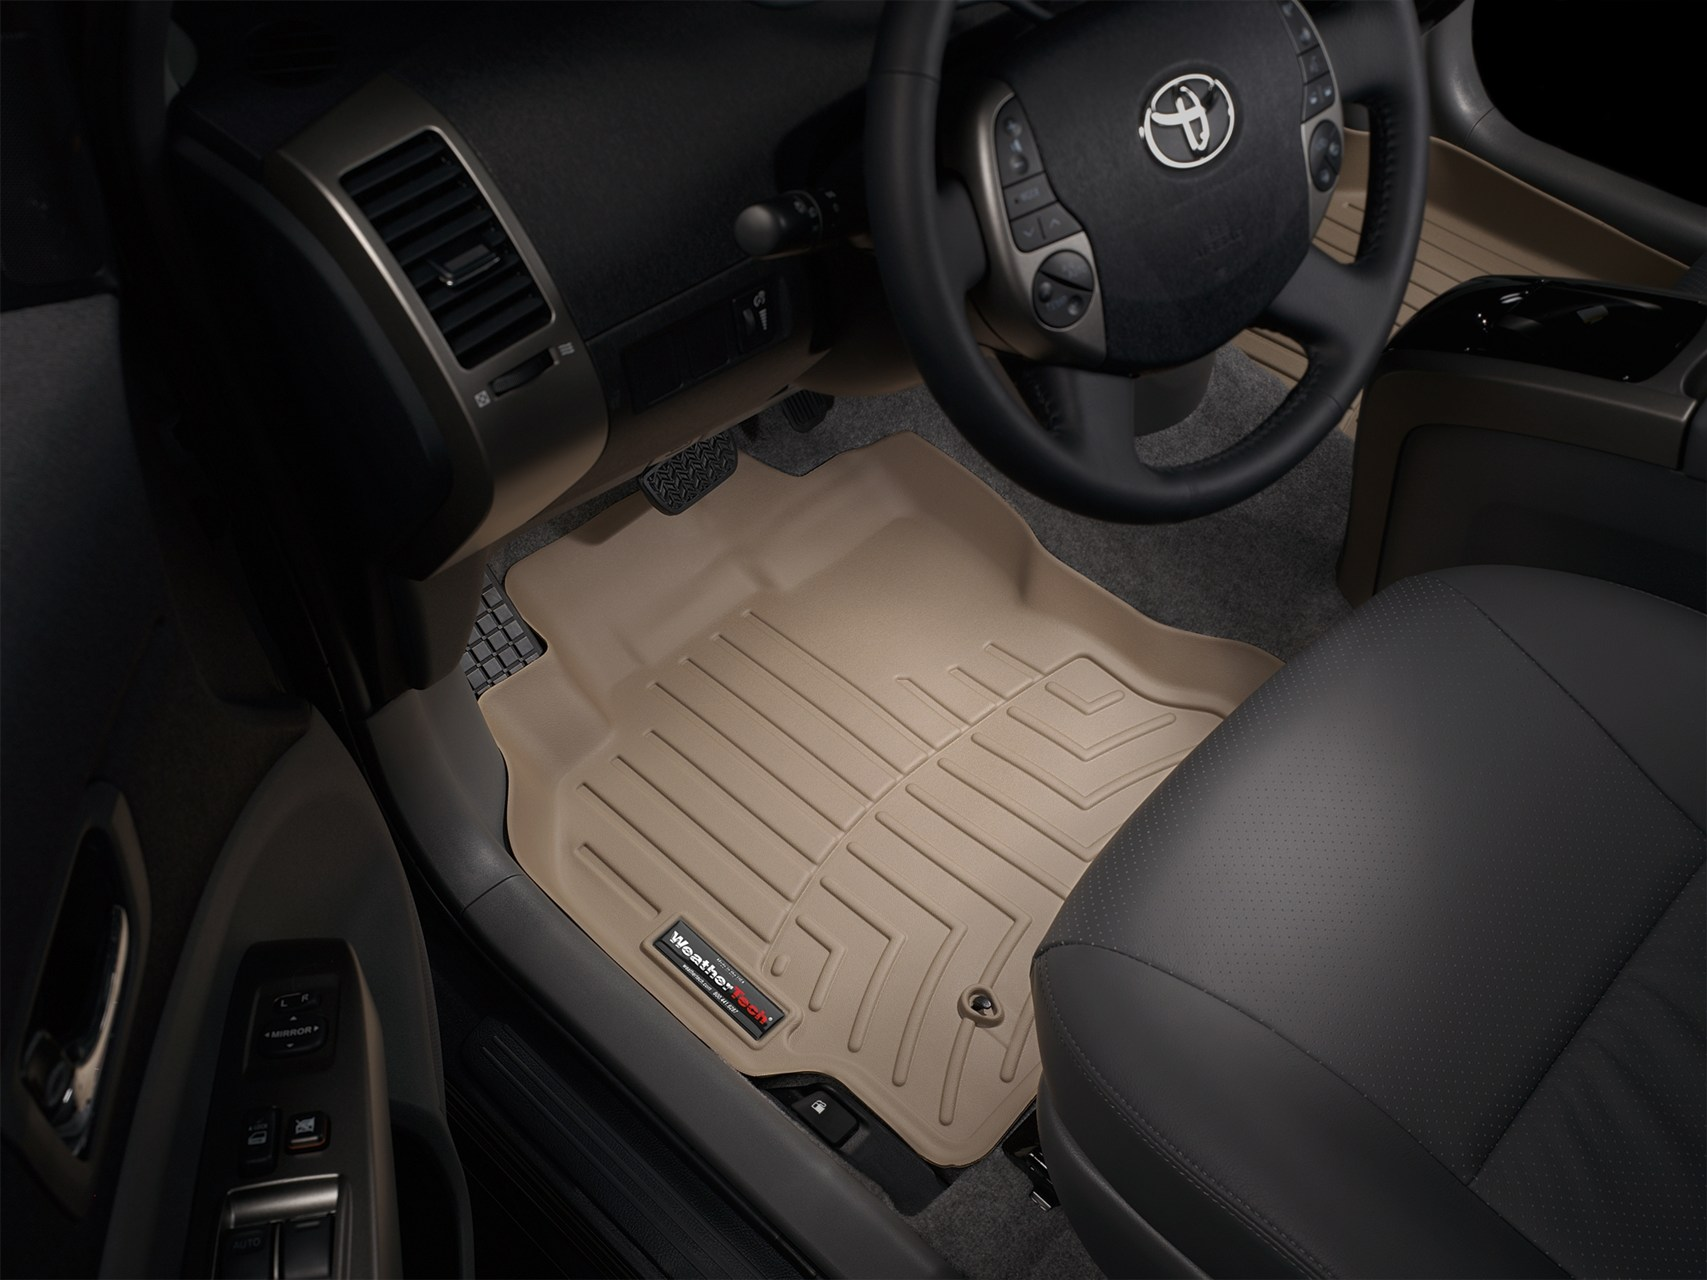 show fast amp unique the mats shipping of ignite digitalfit car lovely free fitted floors laser floor weathertech